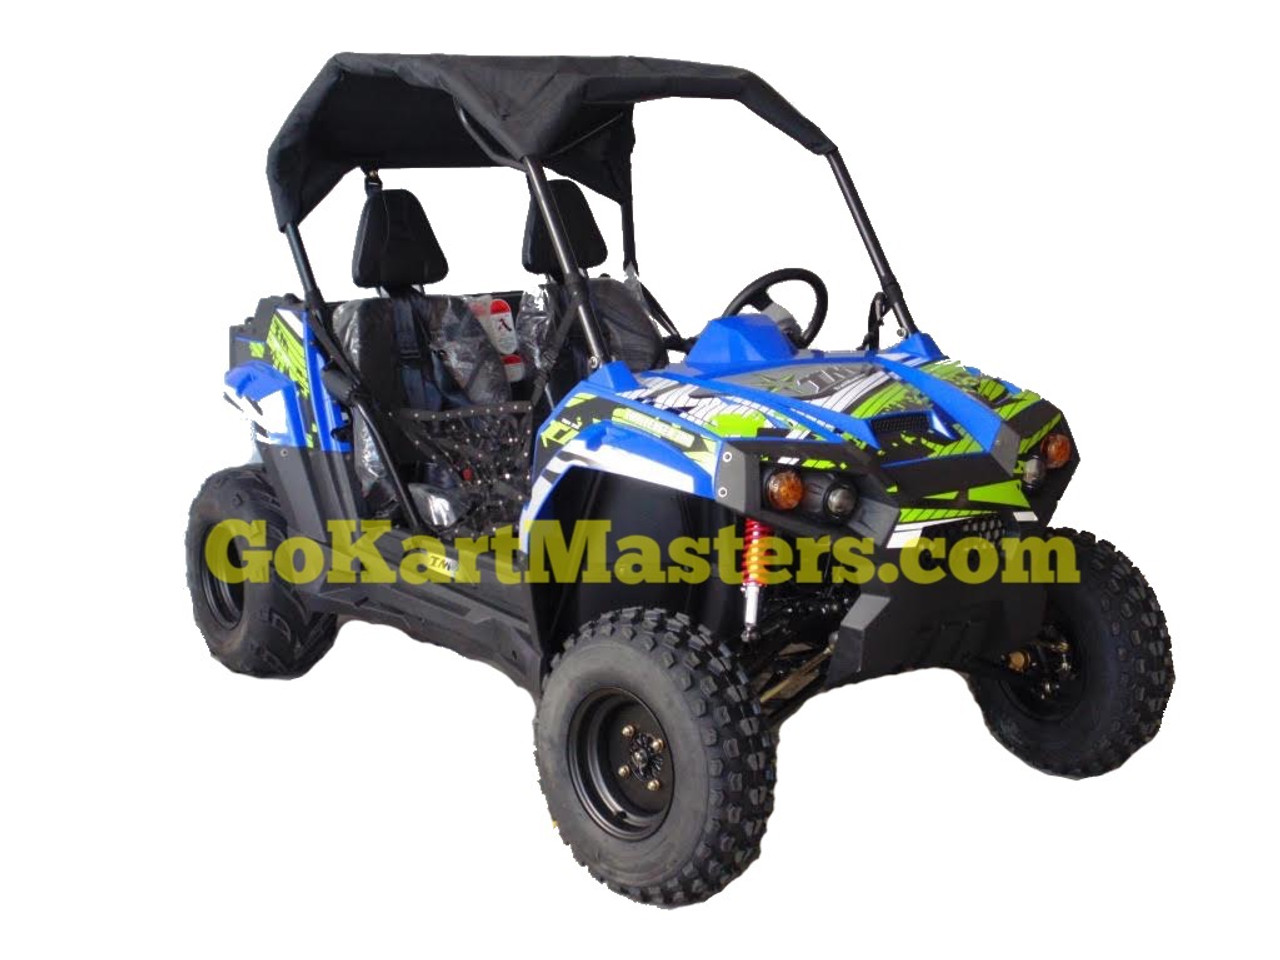 TrailMaster Challenger 300S UTV Side by Side - Ships FREE!!! - Blue